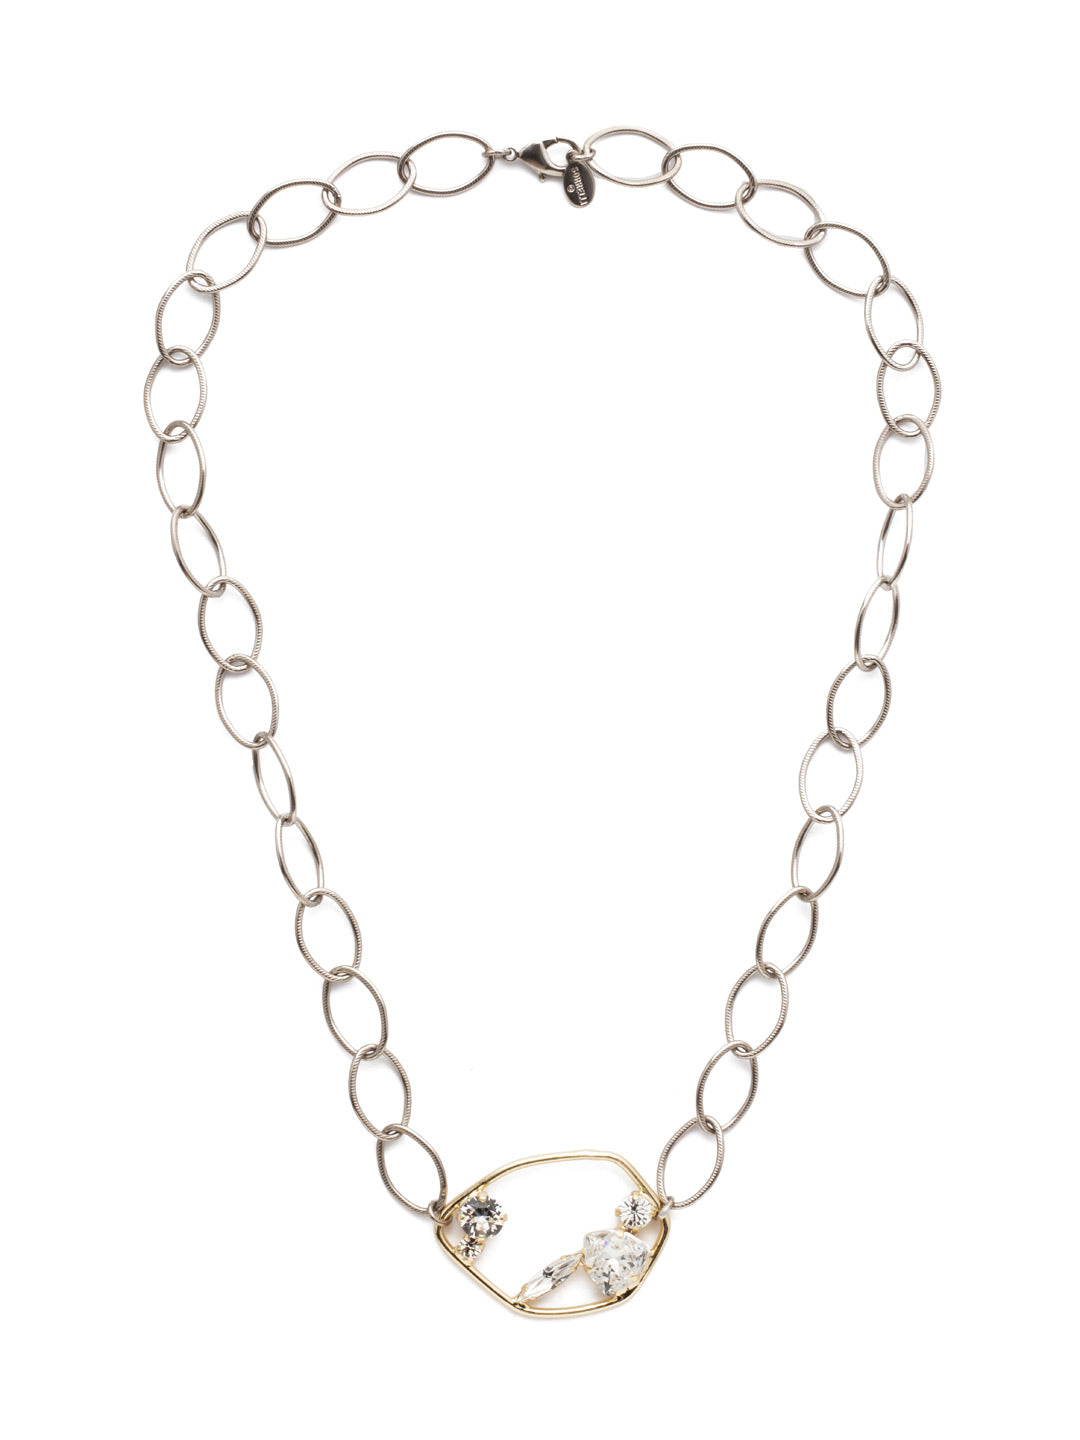 Jeanne Tennis Necklace - 4NEN11MXCRY